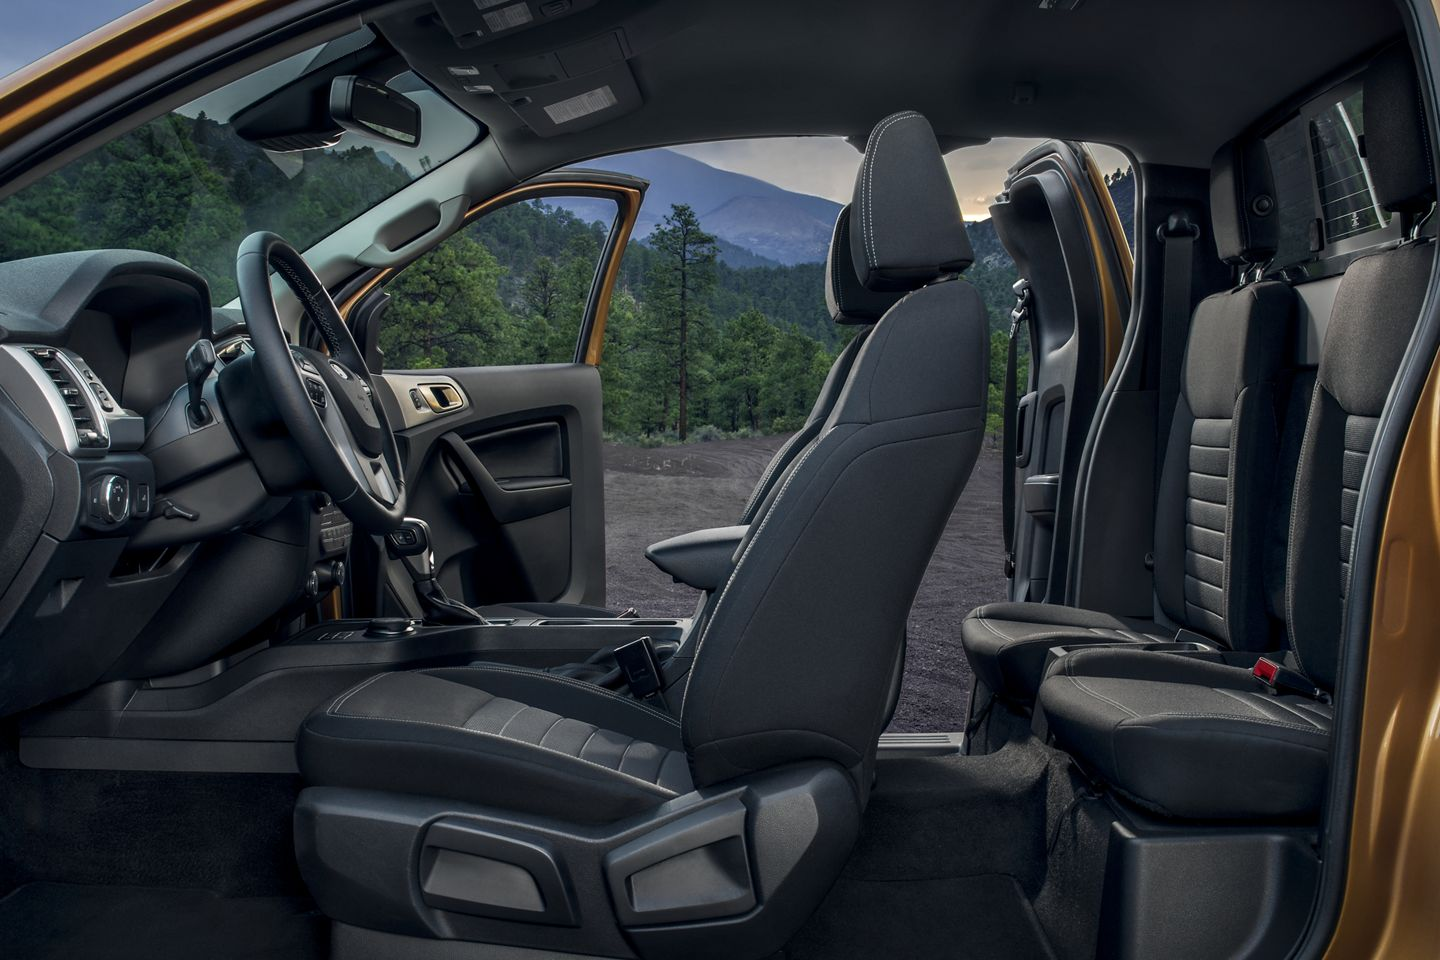 New 2019 Ford Ranger Seats